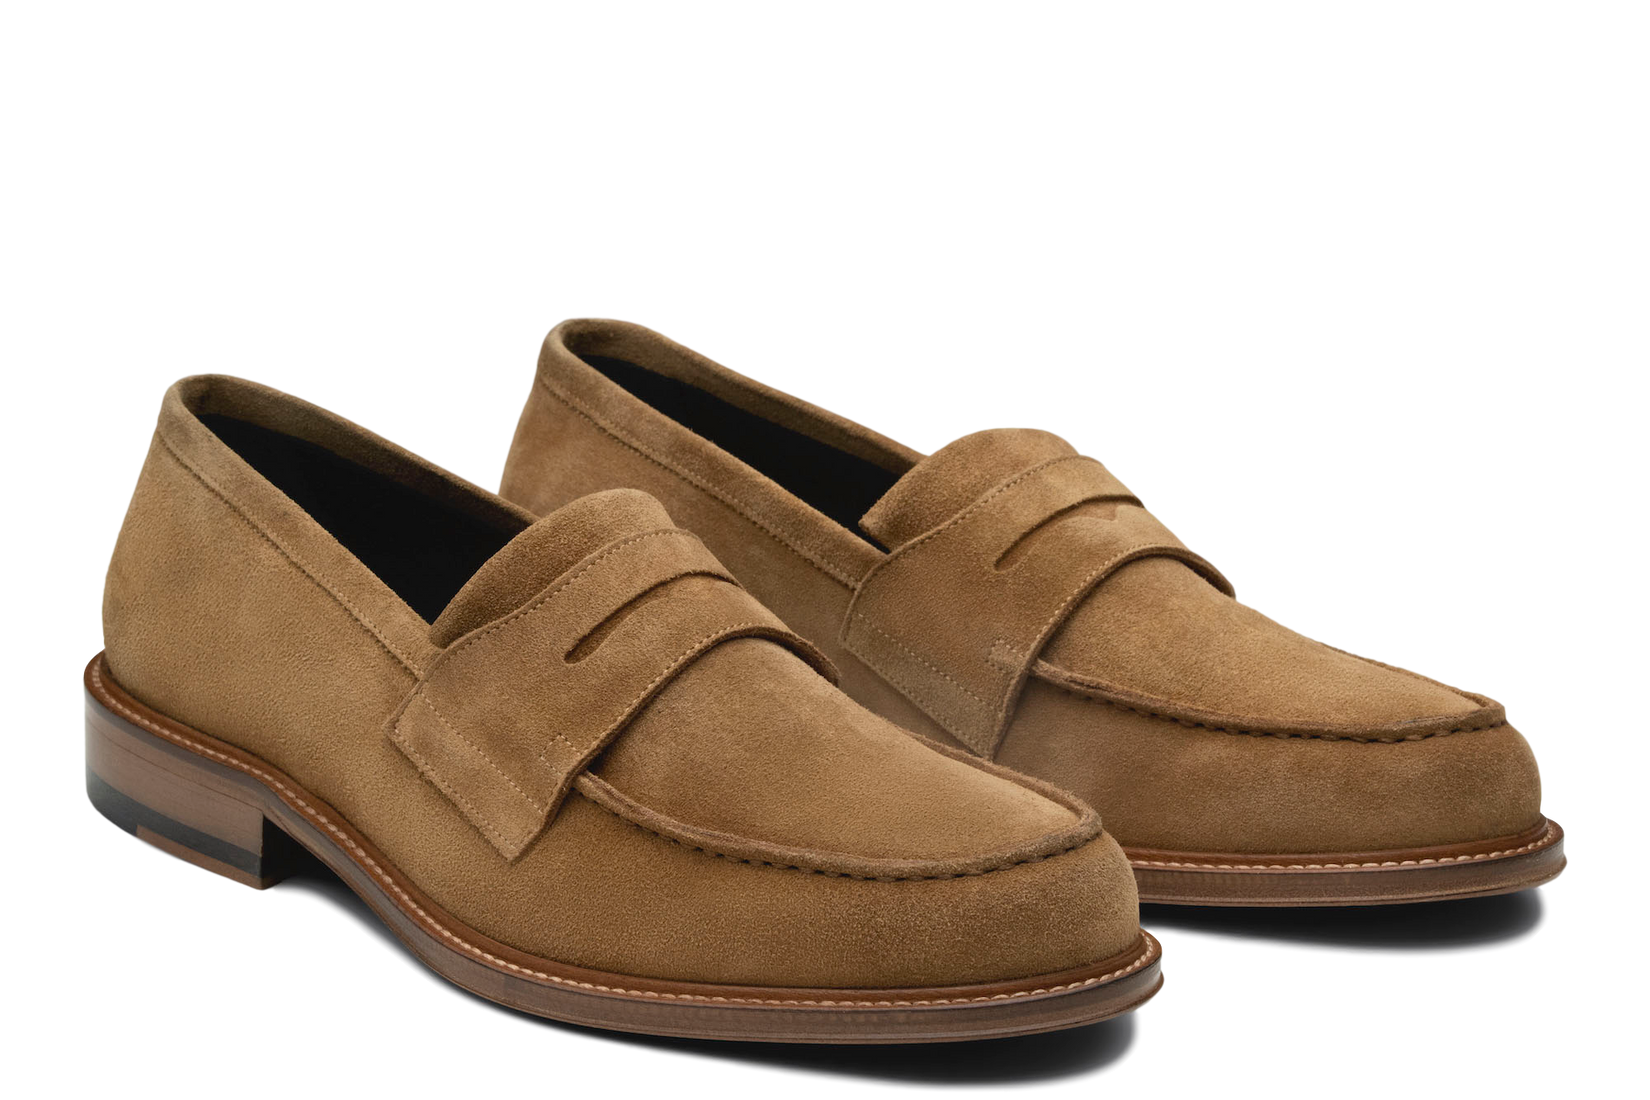 Monday Penny Loafer in Tan